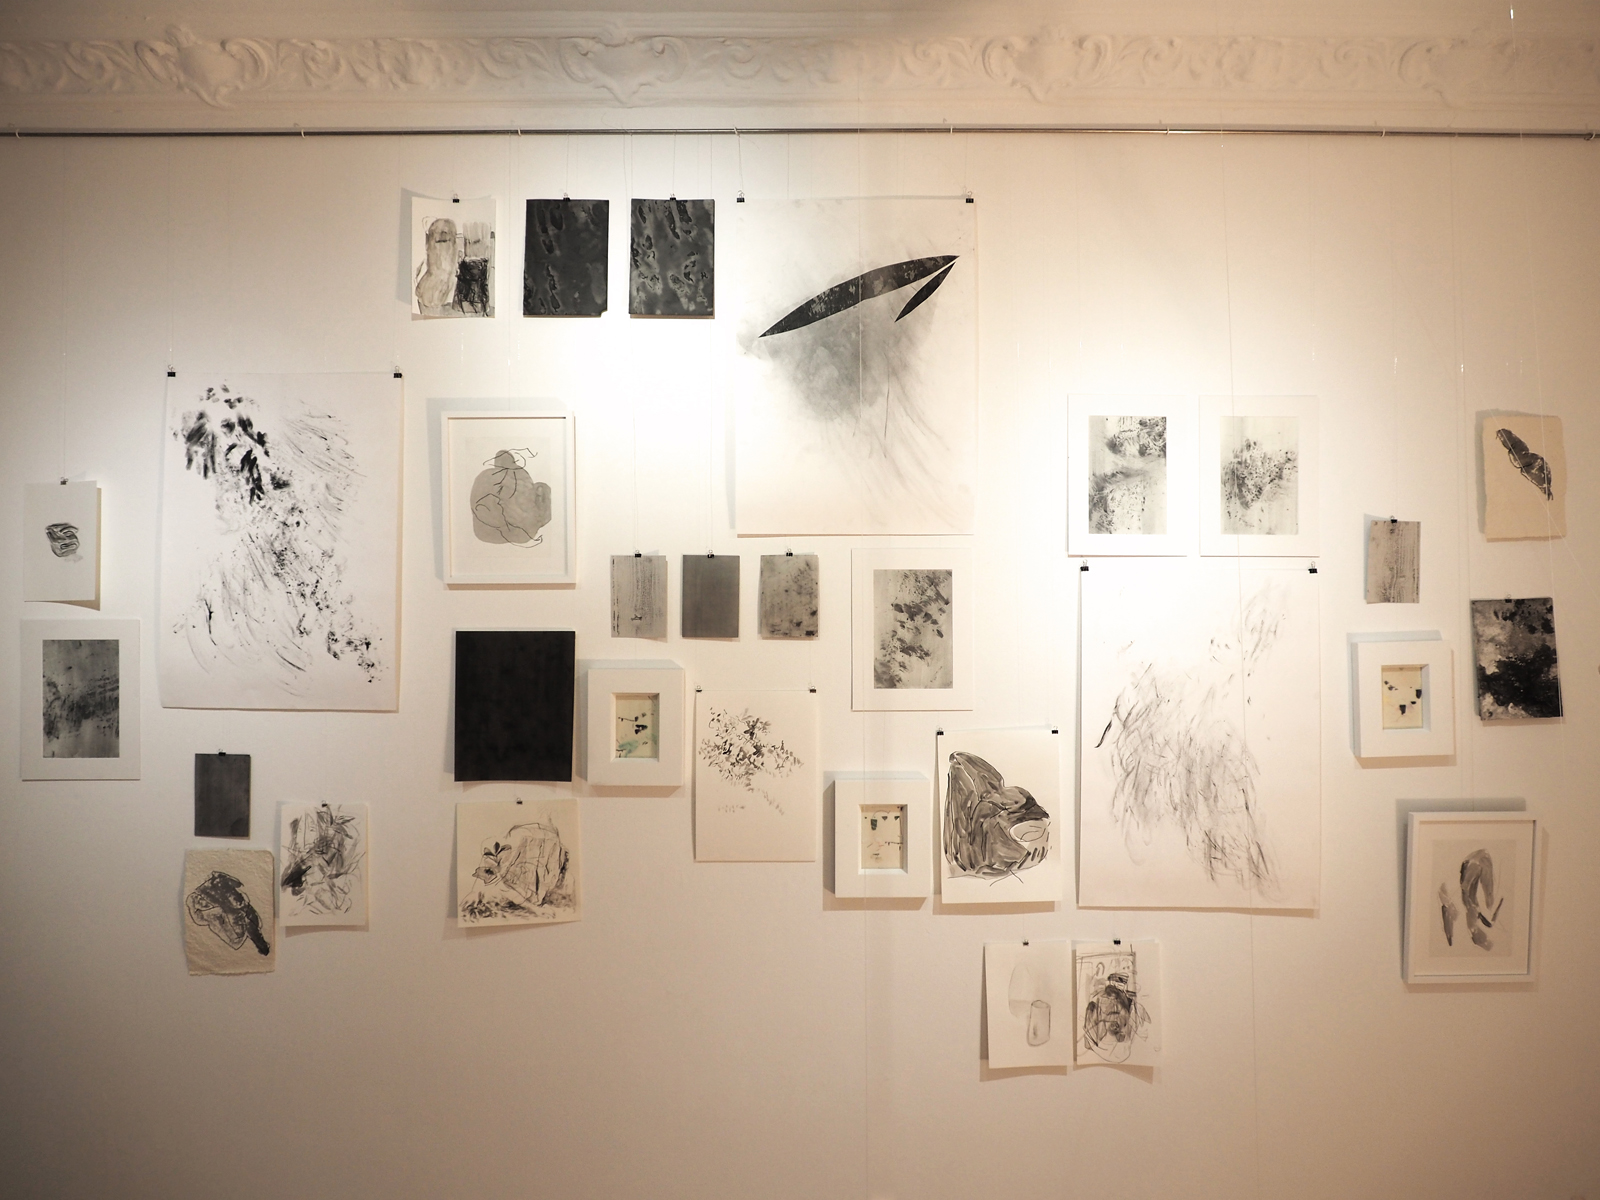 INSTALLATION VIEW of collective drawings, PROJEKTRAUM WILIBALD-ALEXIS, September 2018